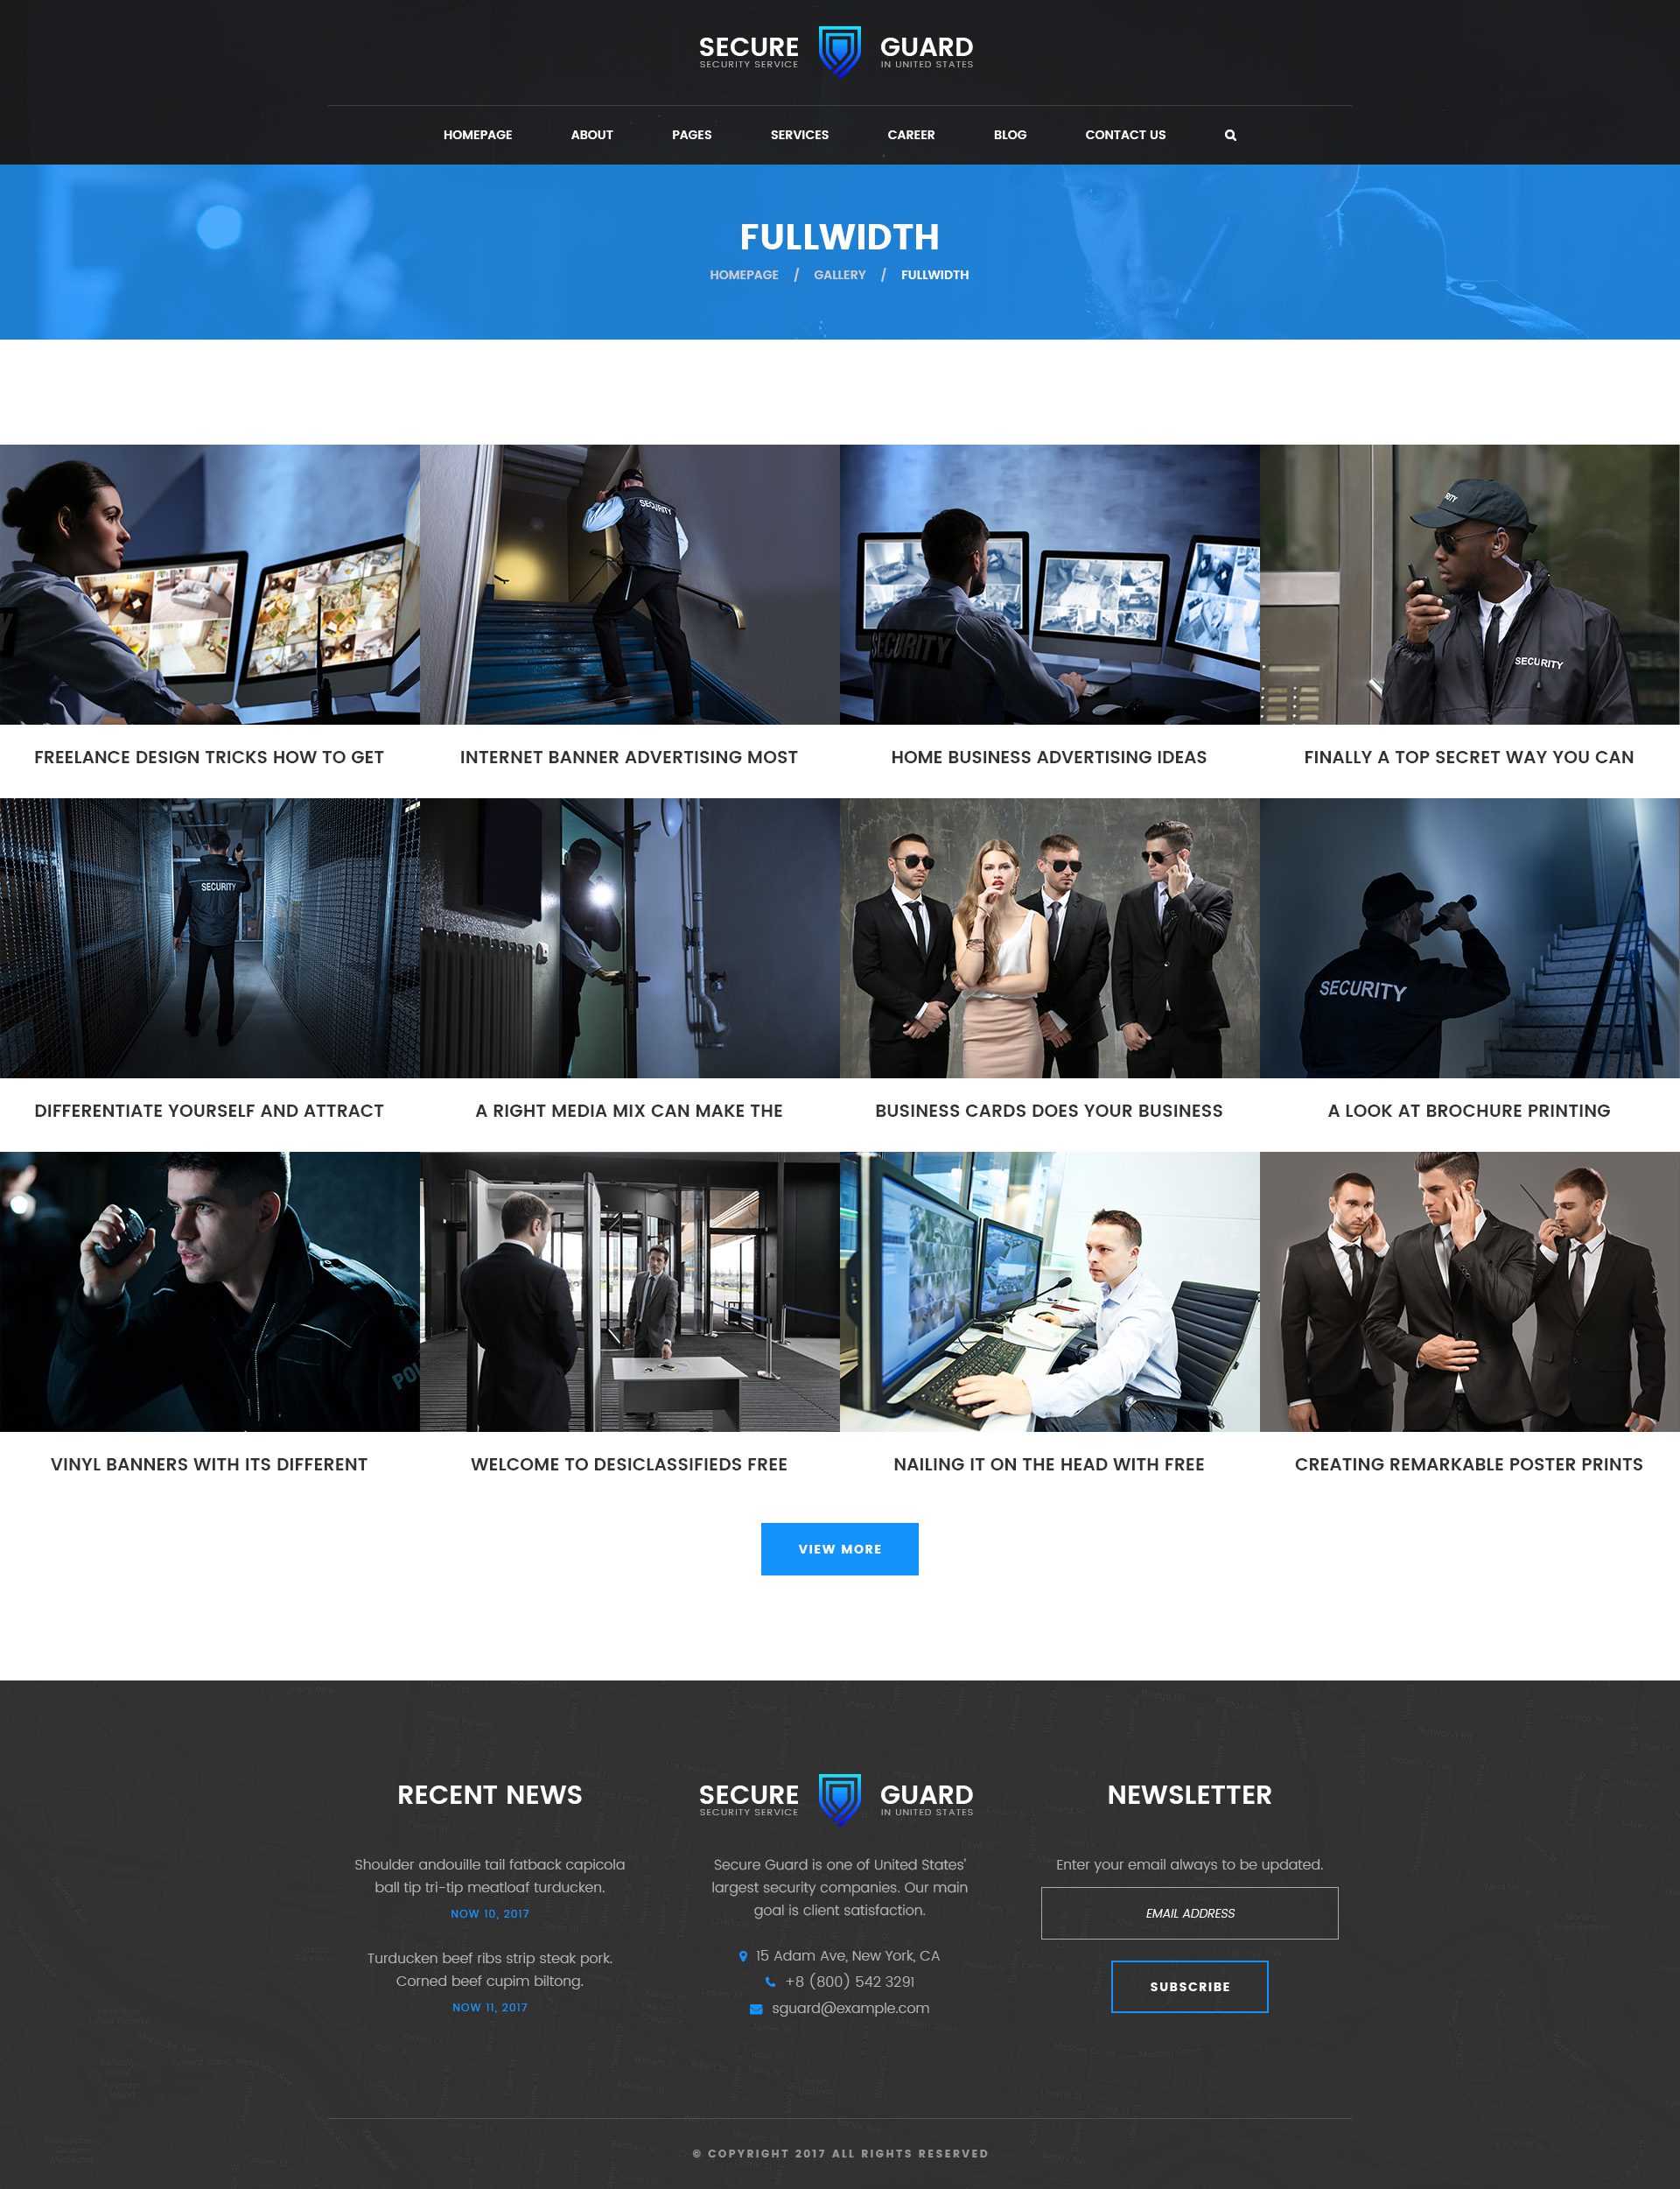 SecureGuard – Security Service PSD Template by mwtemplates | ThemeForest